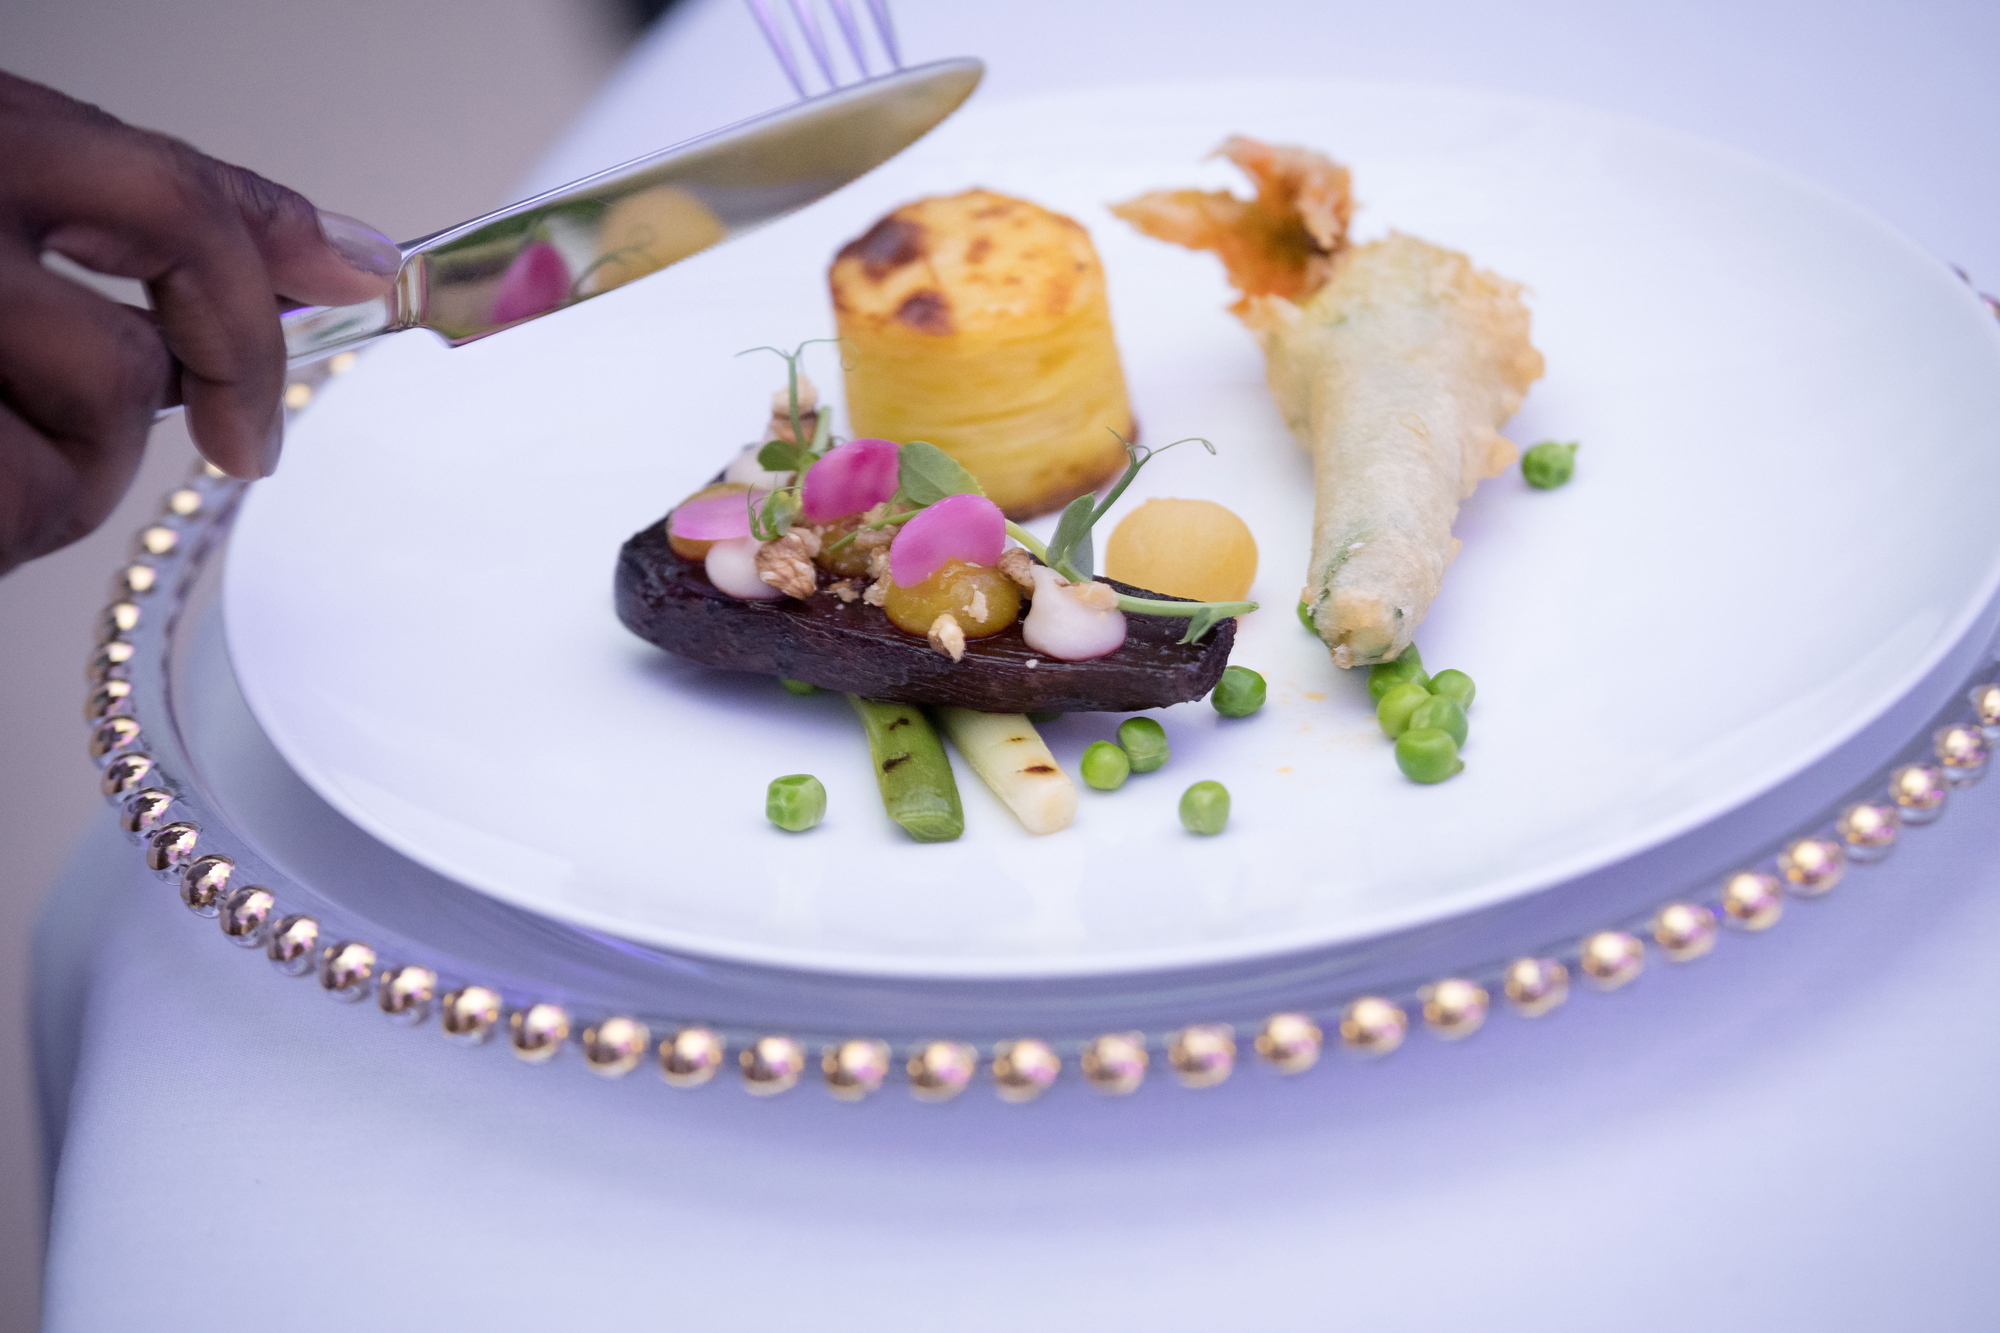 Westminster Collection venues events private dining dinner